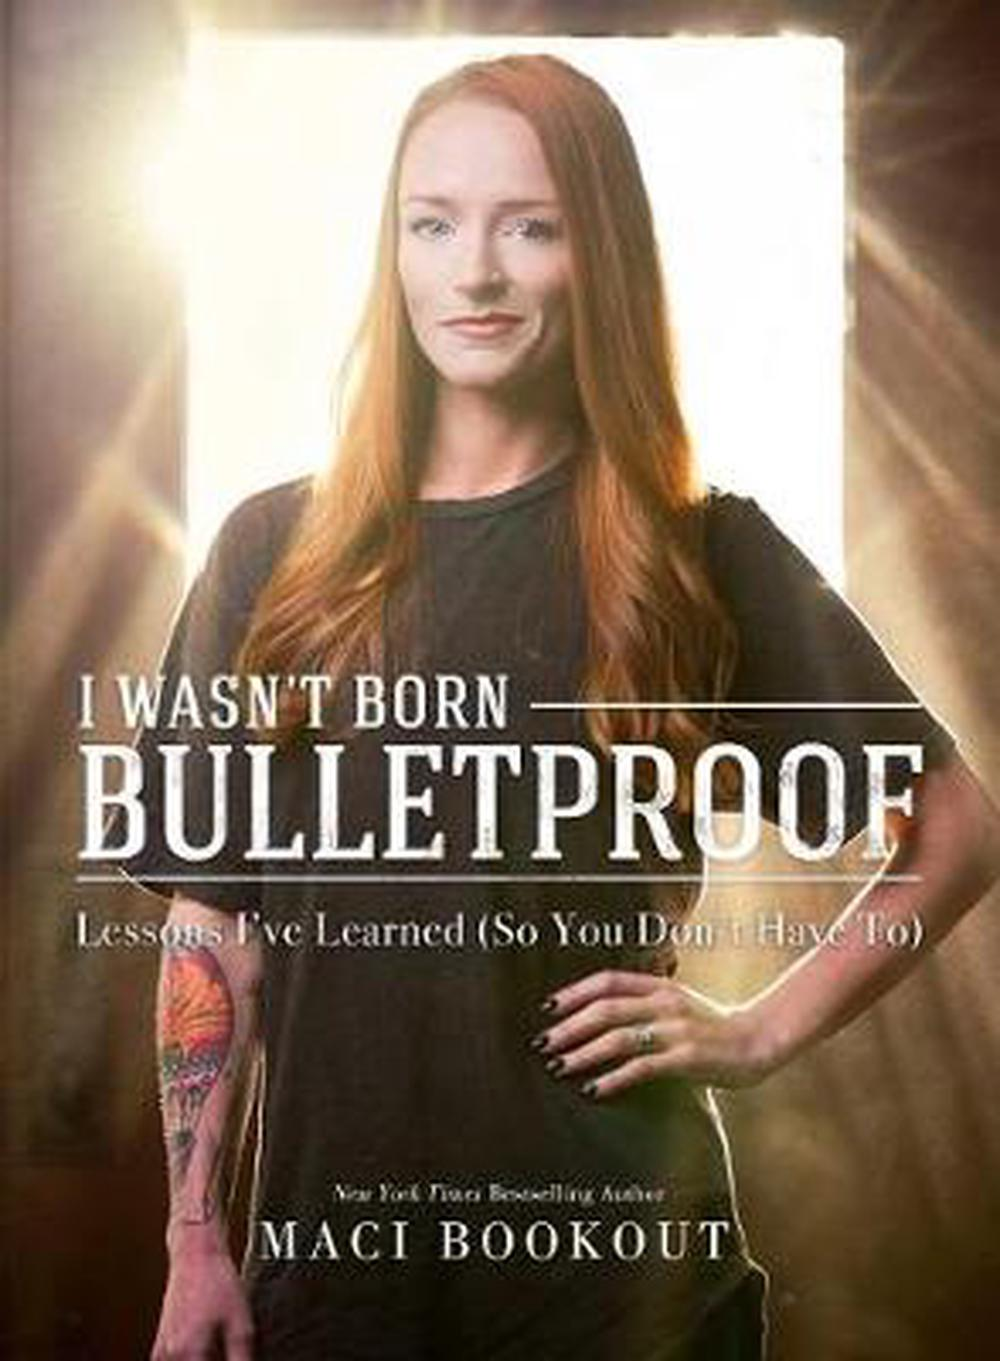 I Wasn't Born BulletproofLessons I've Learned (So You Don't Have To) by Maci Bookout, ISBN: 9781682613238